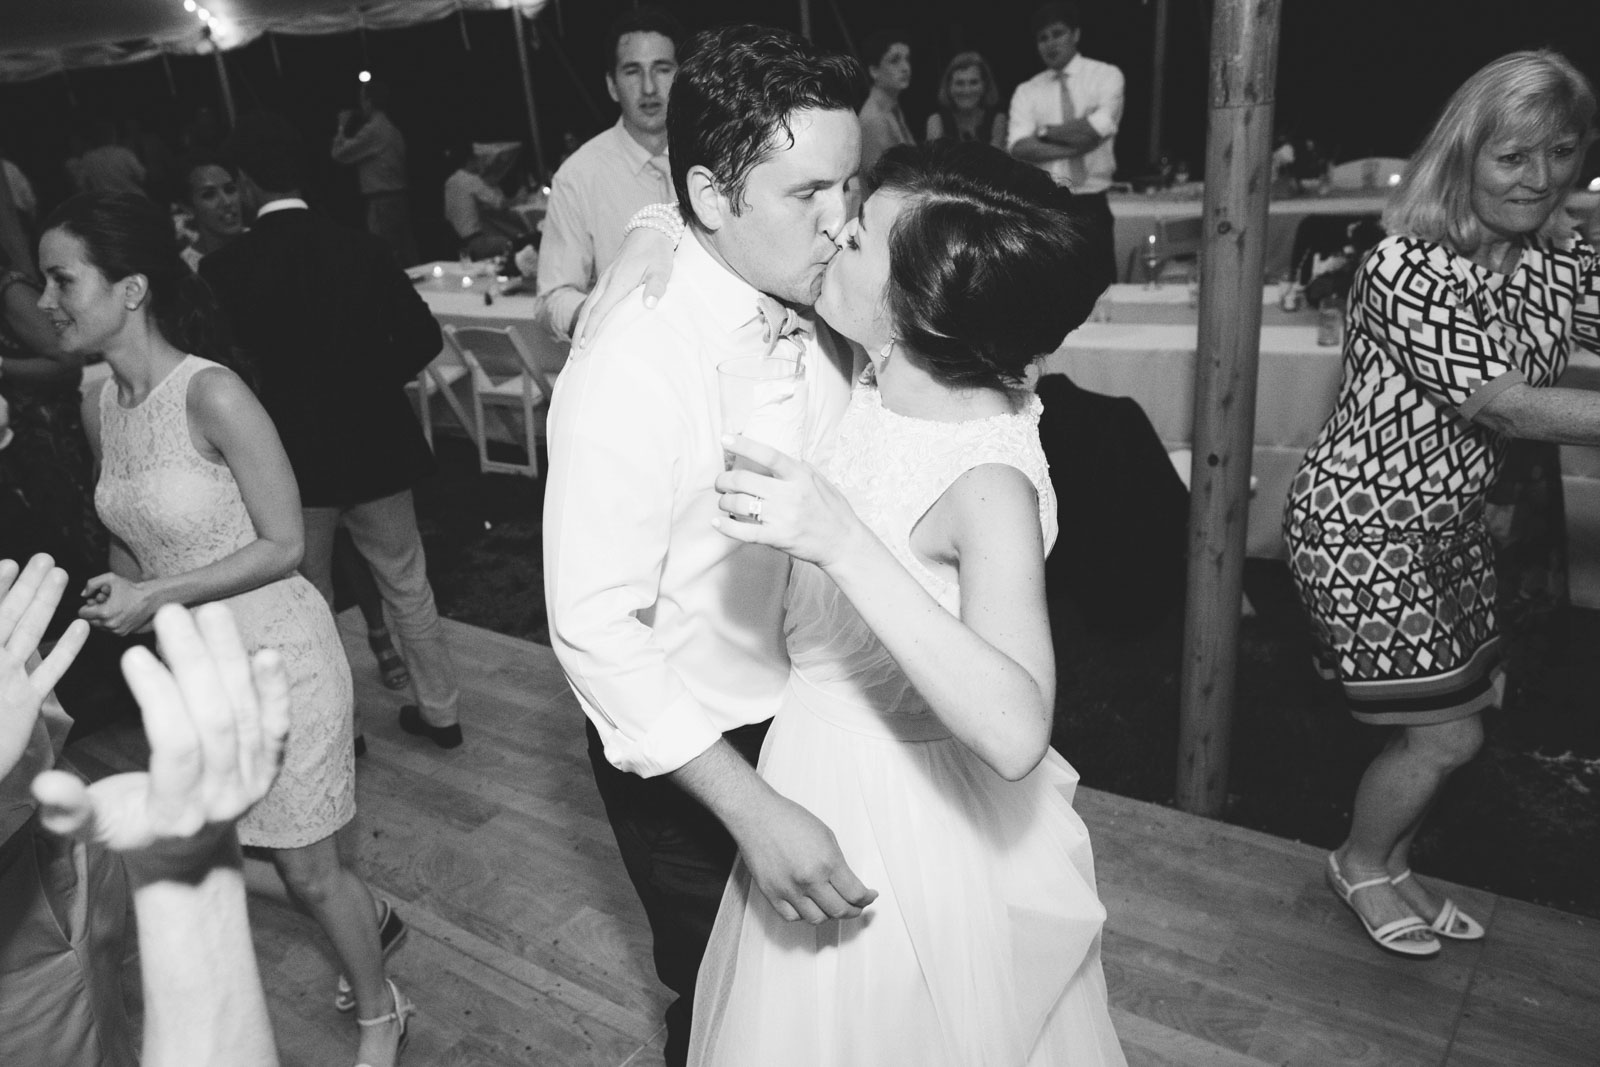 Bride and groom dancing and kissing on the dance floor, romantic black and white.